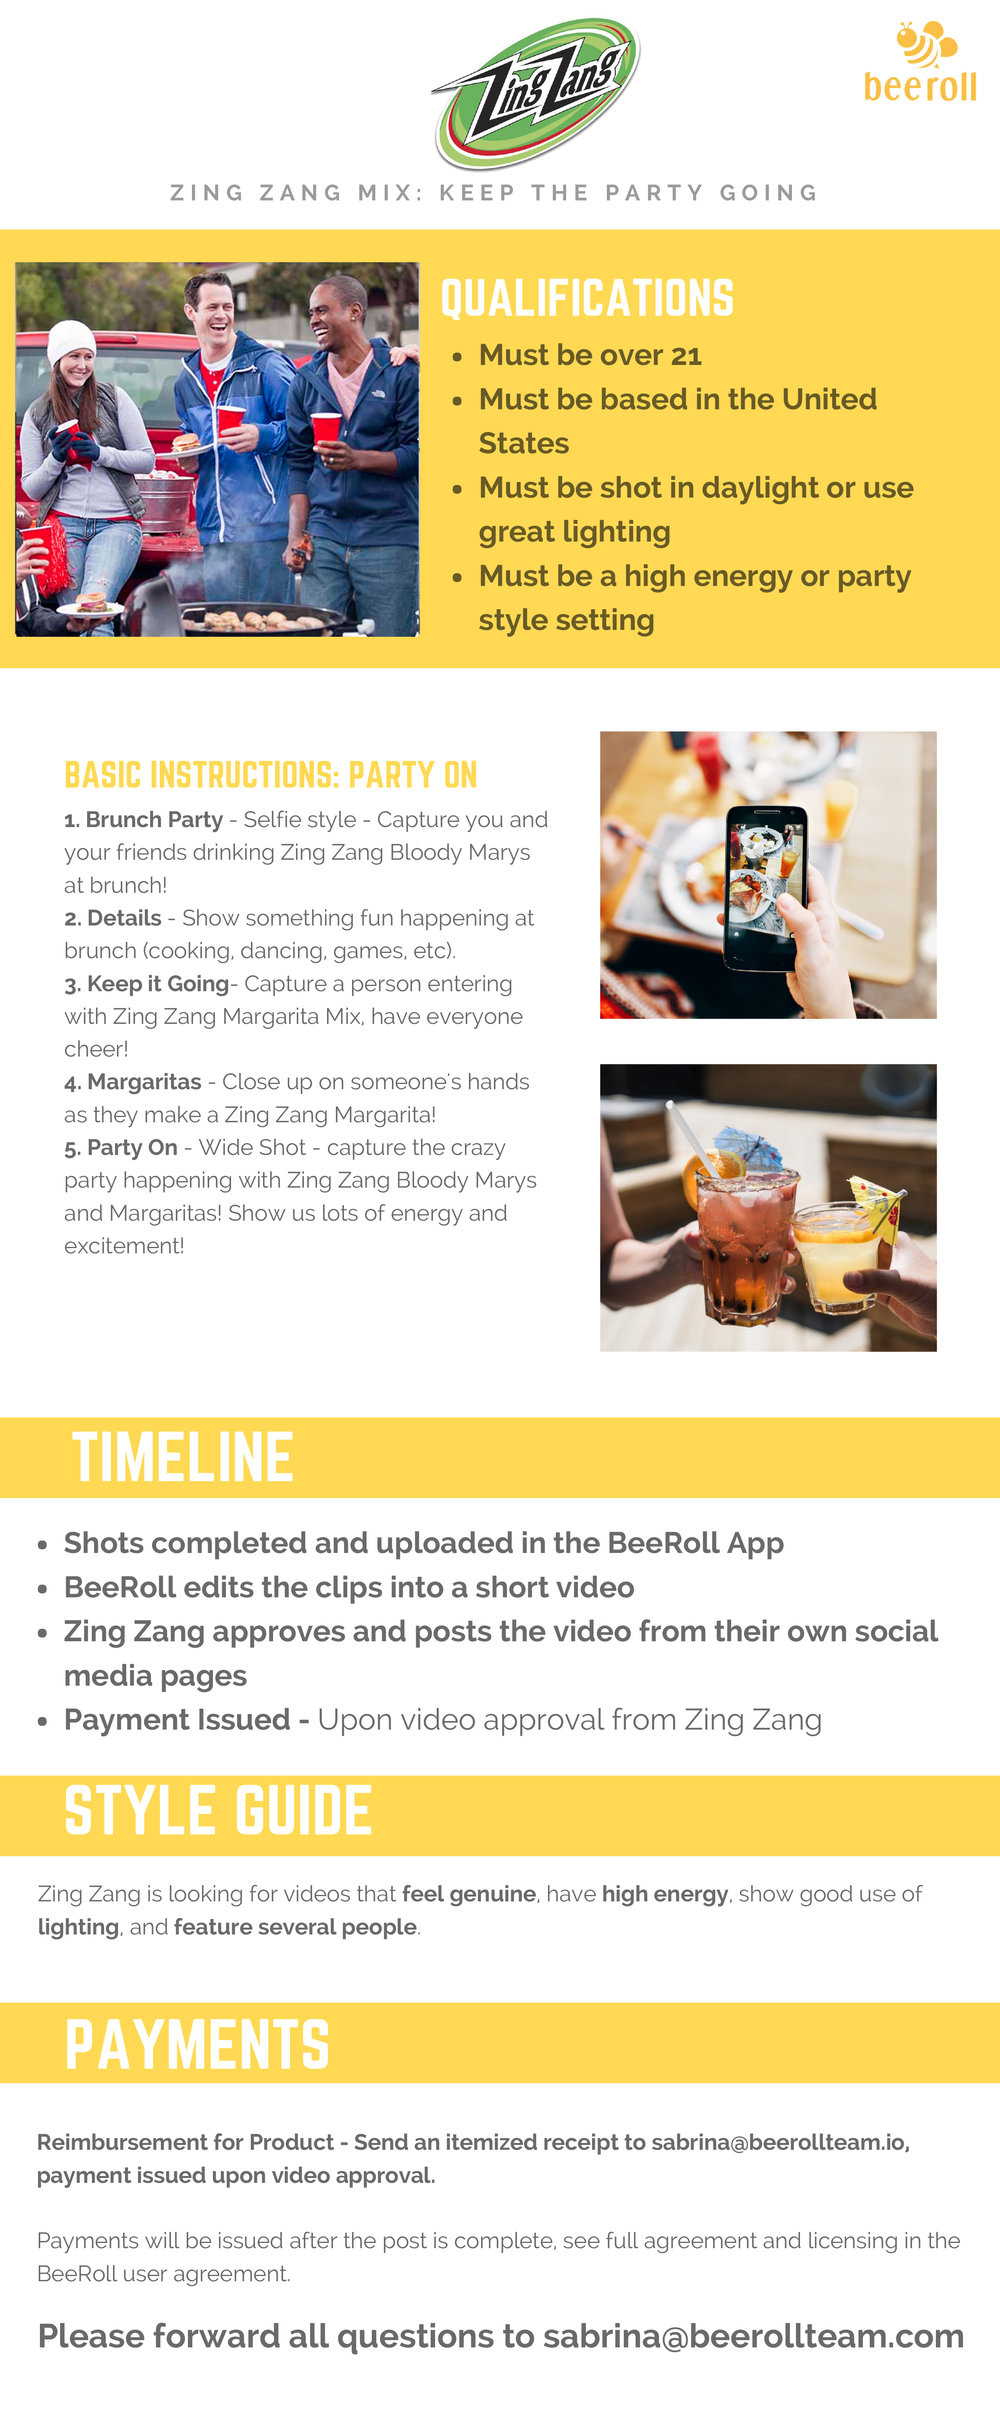 PUBLISHED-Zing Zang Keep the Party Going One Pager-1.jpg